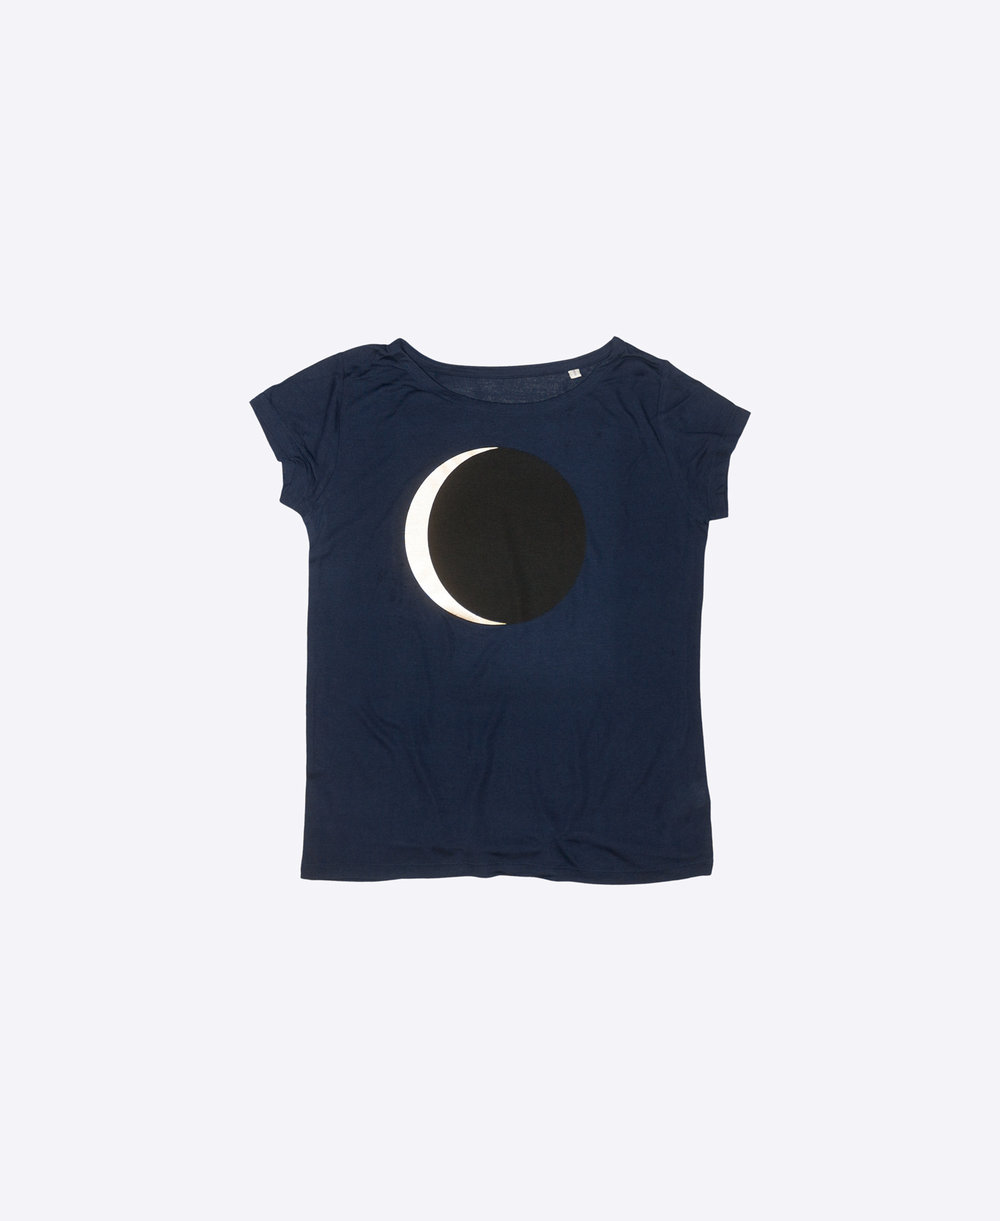 crescent-moon-female-navy-tee-modal-tee.jpg